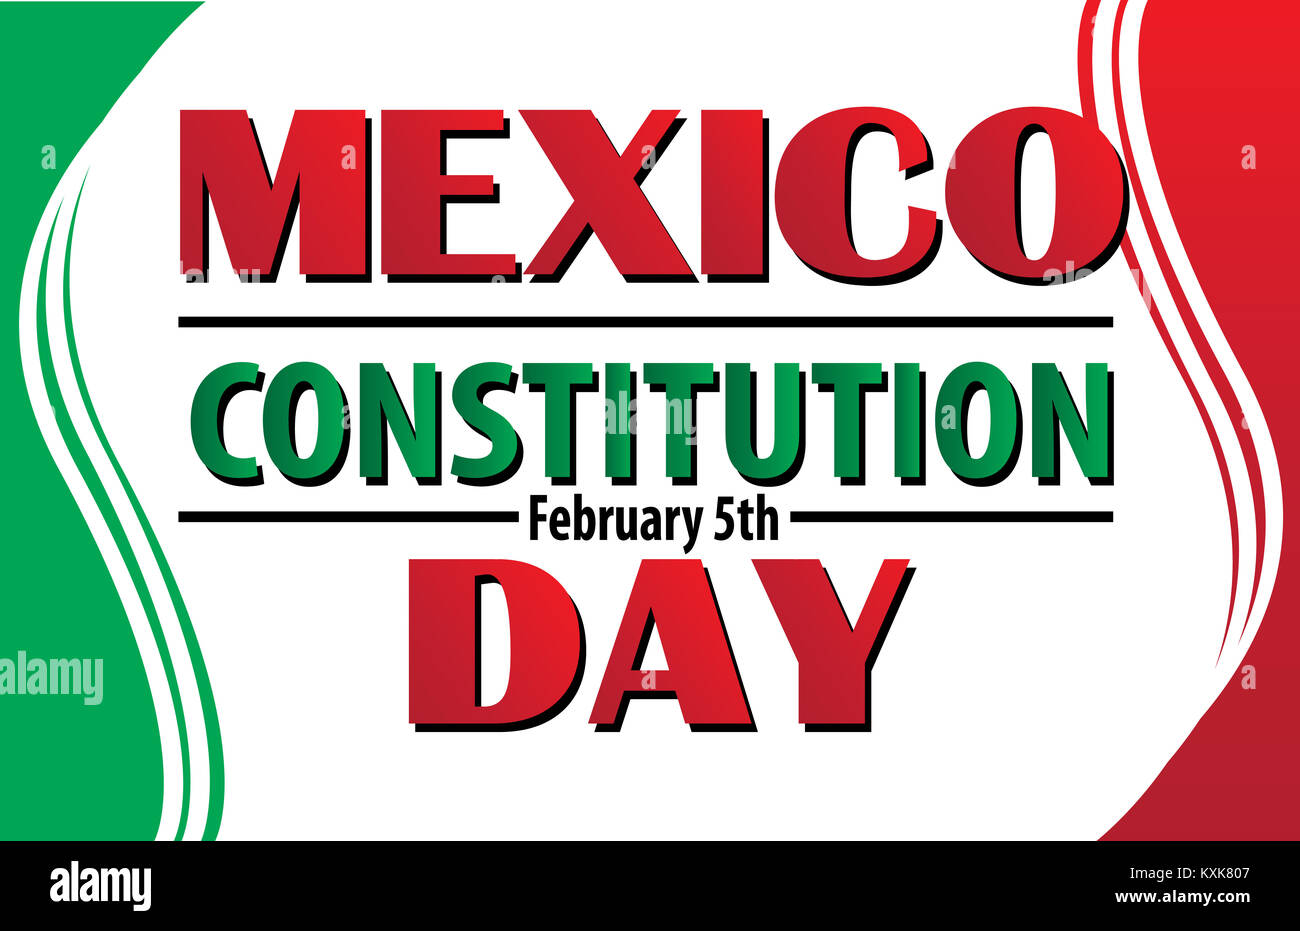 Mexico Constitution Day February 5 Logo With Mexican Flag